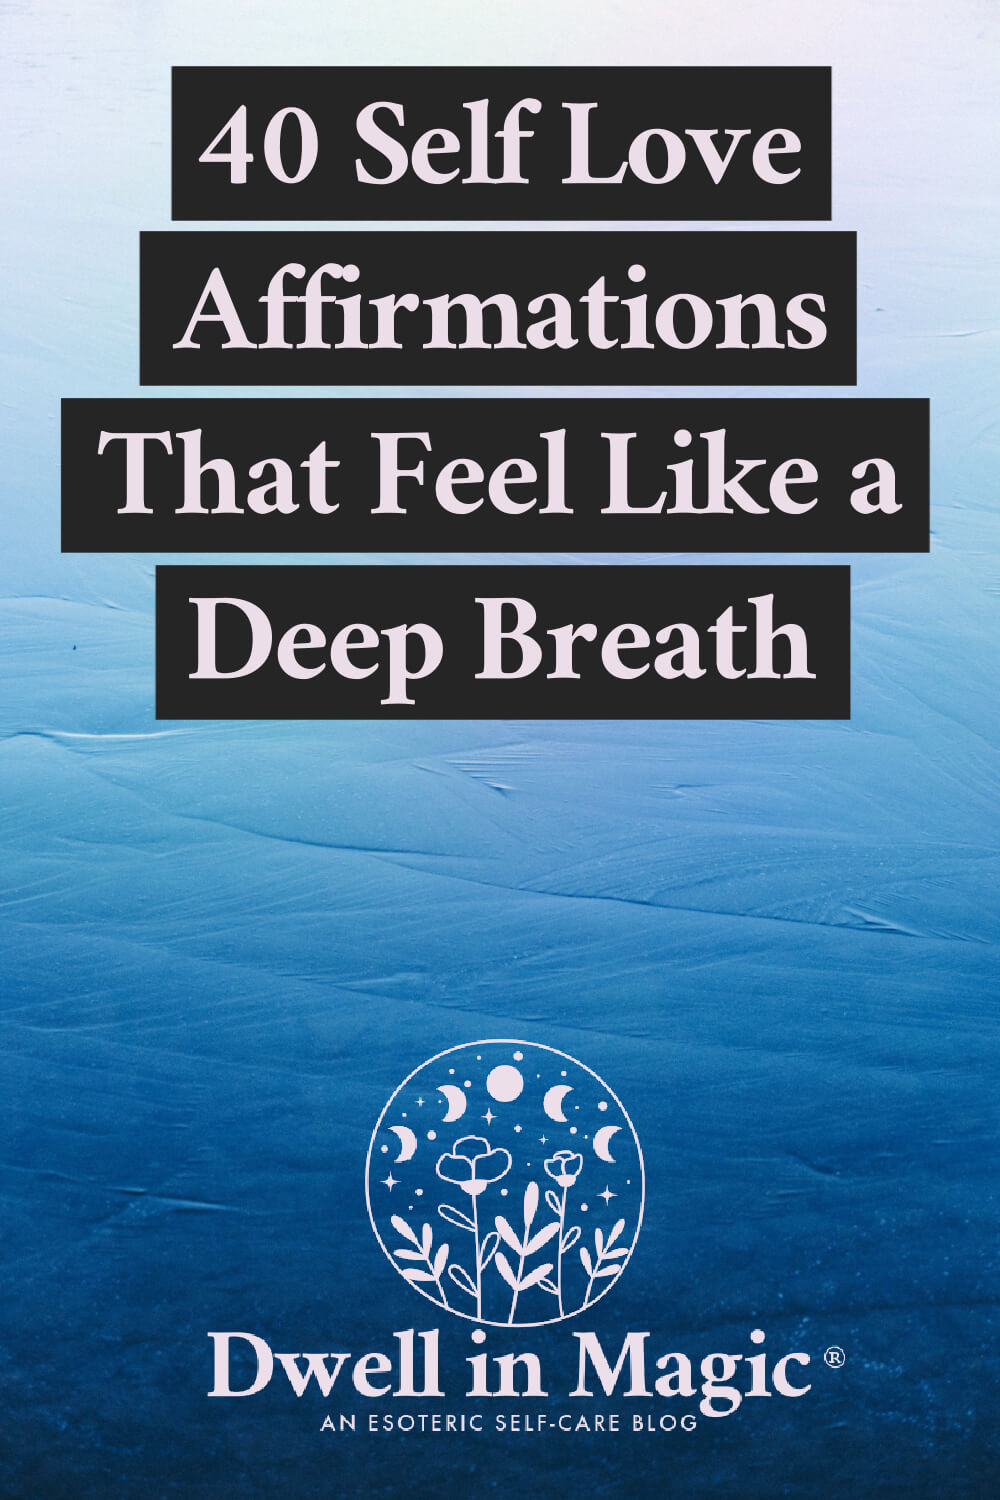 Self love affirmations that feel like taking a deep breath